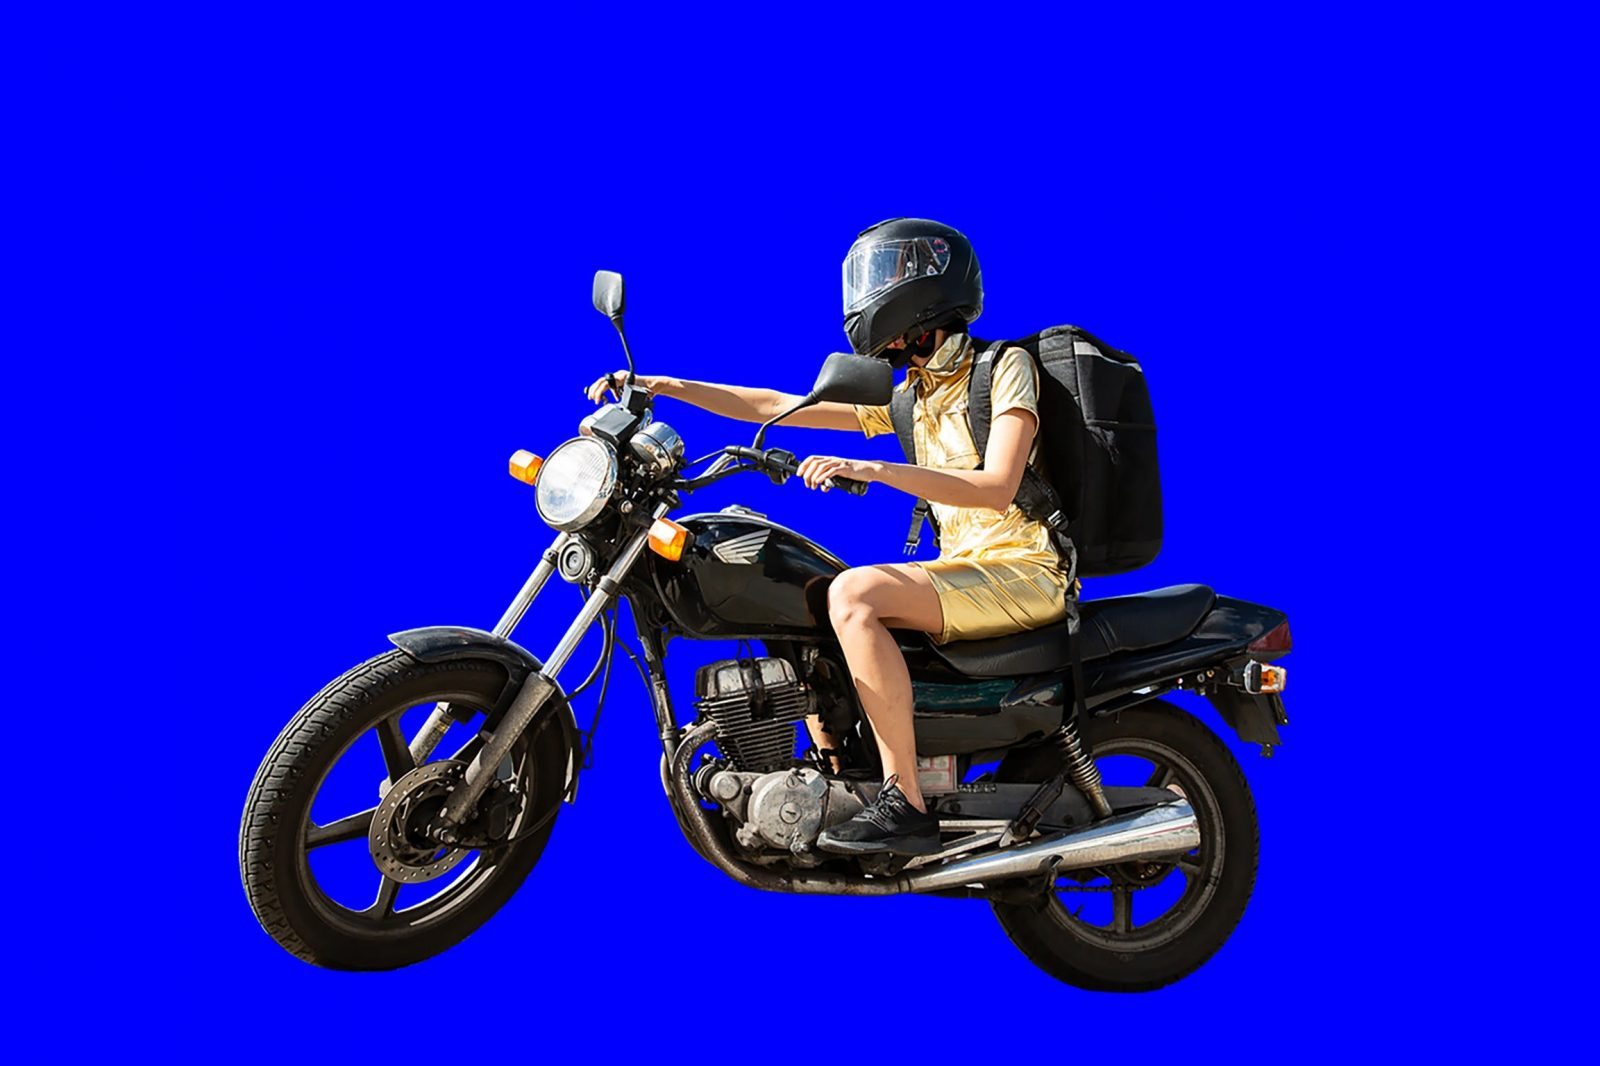 person on a motorbike wearing a gold dress with a food delivery backpack